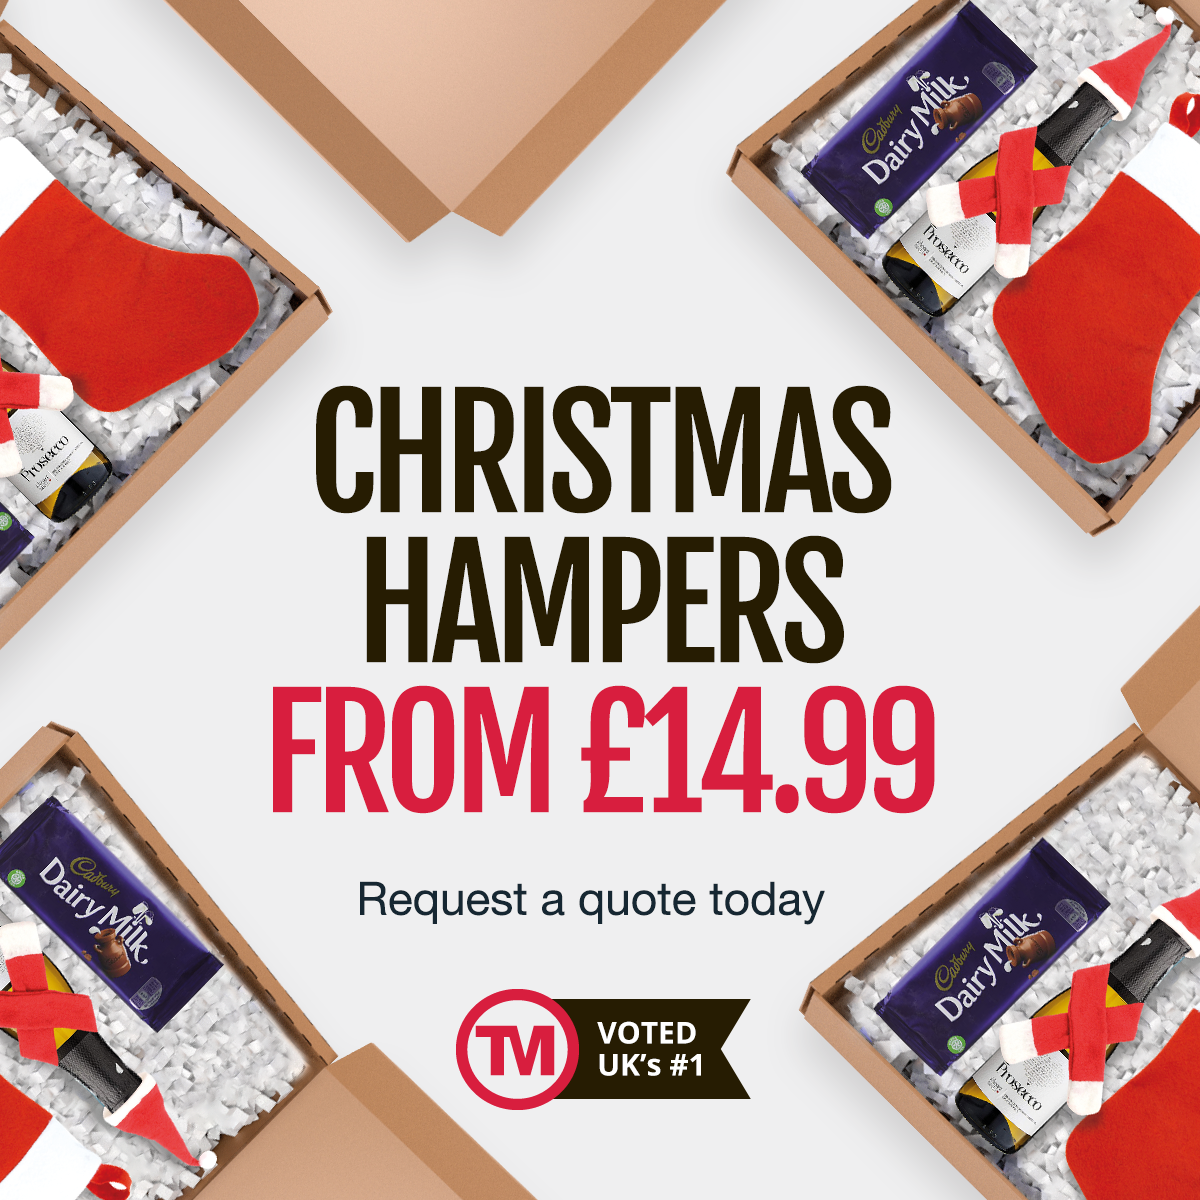 mailable corporate Christmas hampers